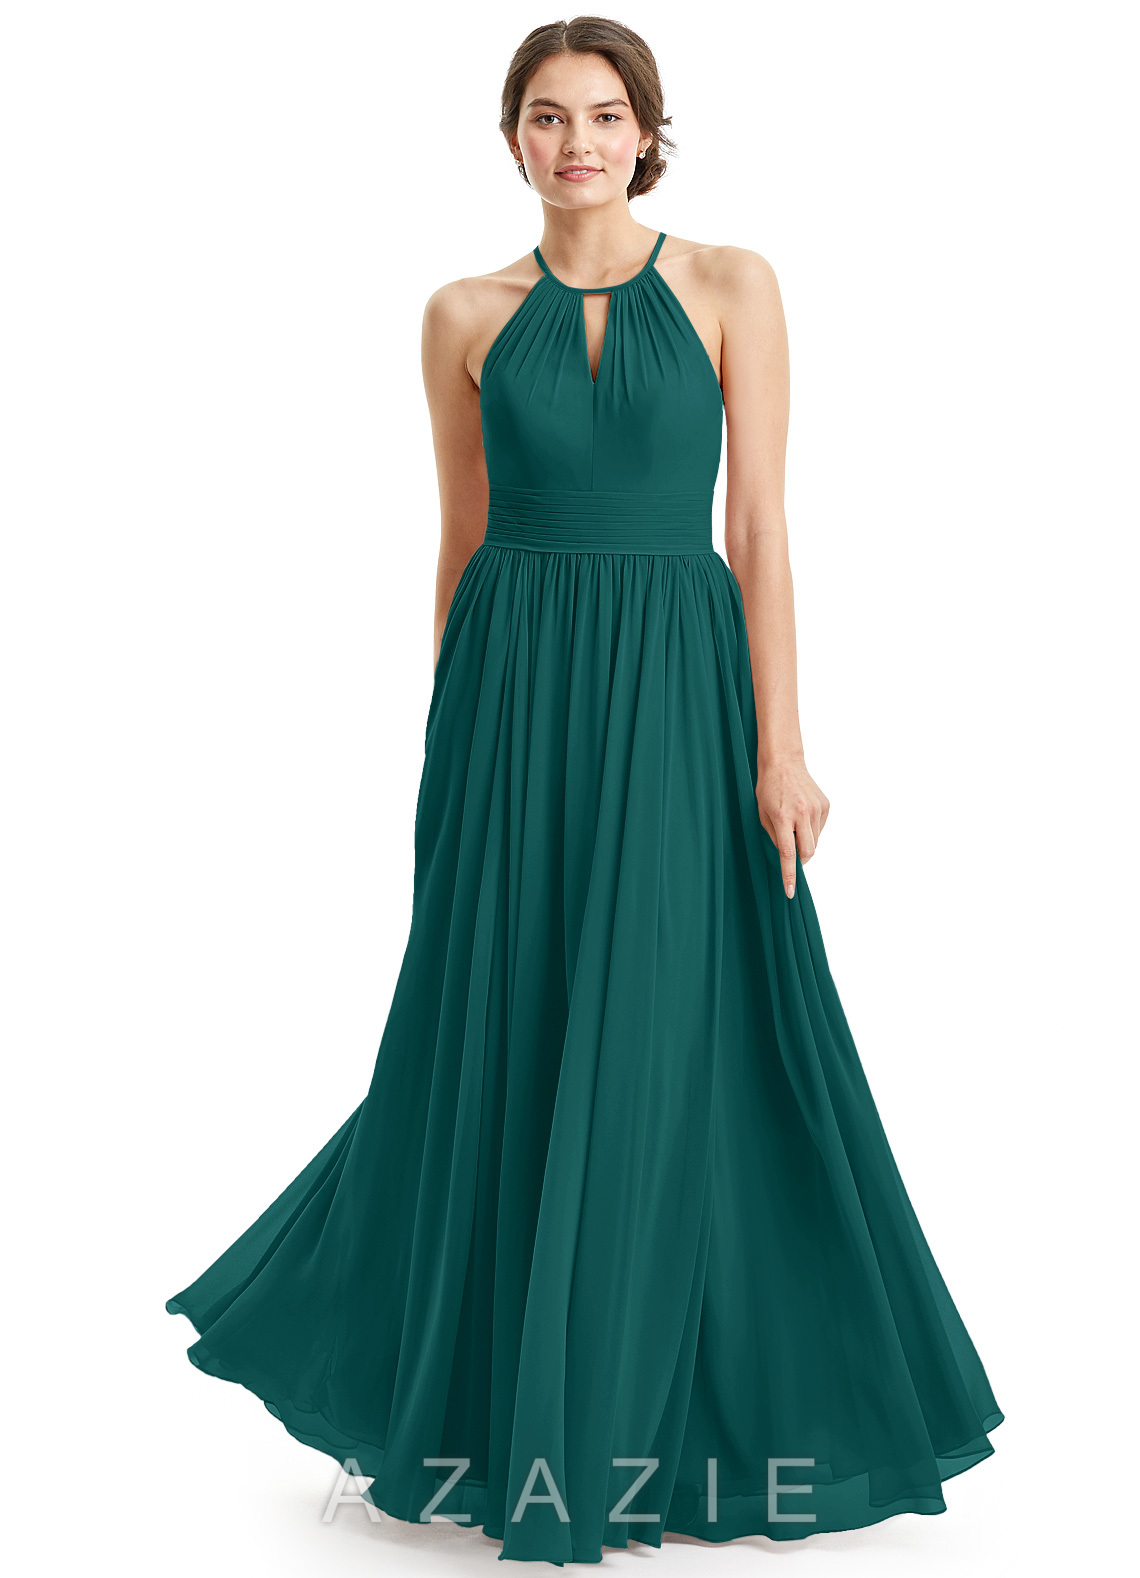 Azazie cherish bridesmaid dress azazie home bridesmaid dresses azazie cherish azazie cherish ombrellifo Image collections